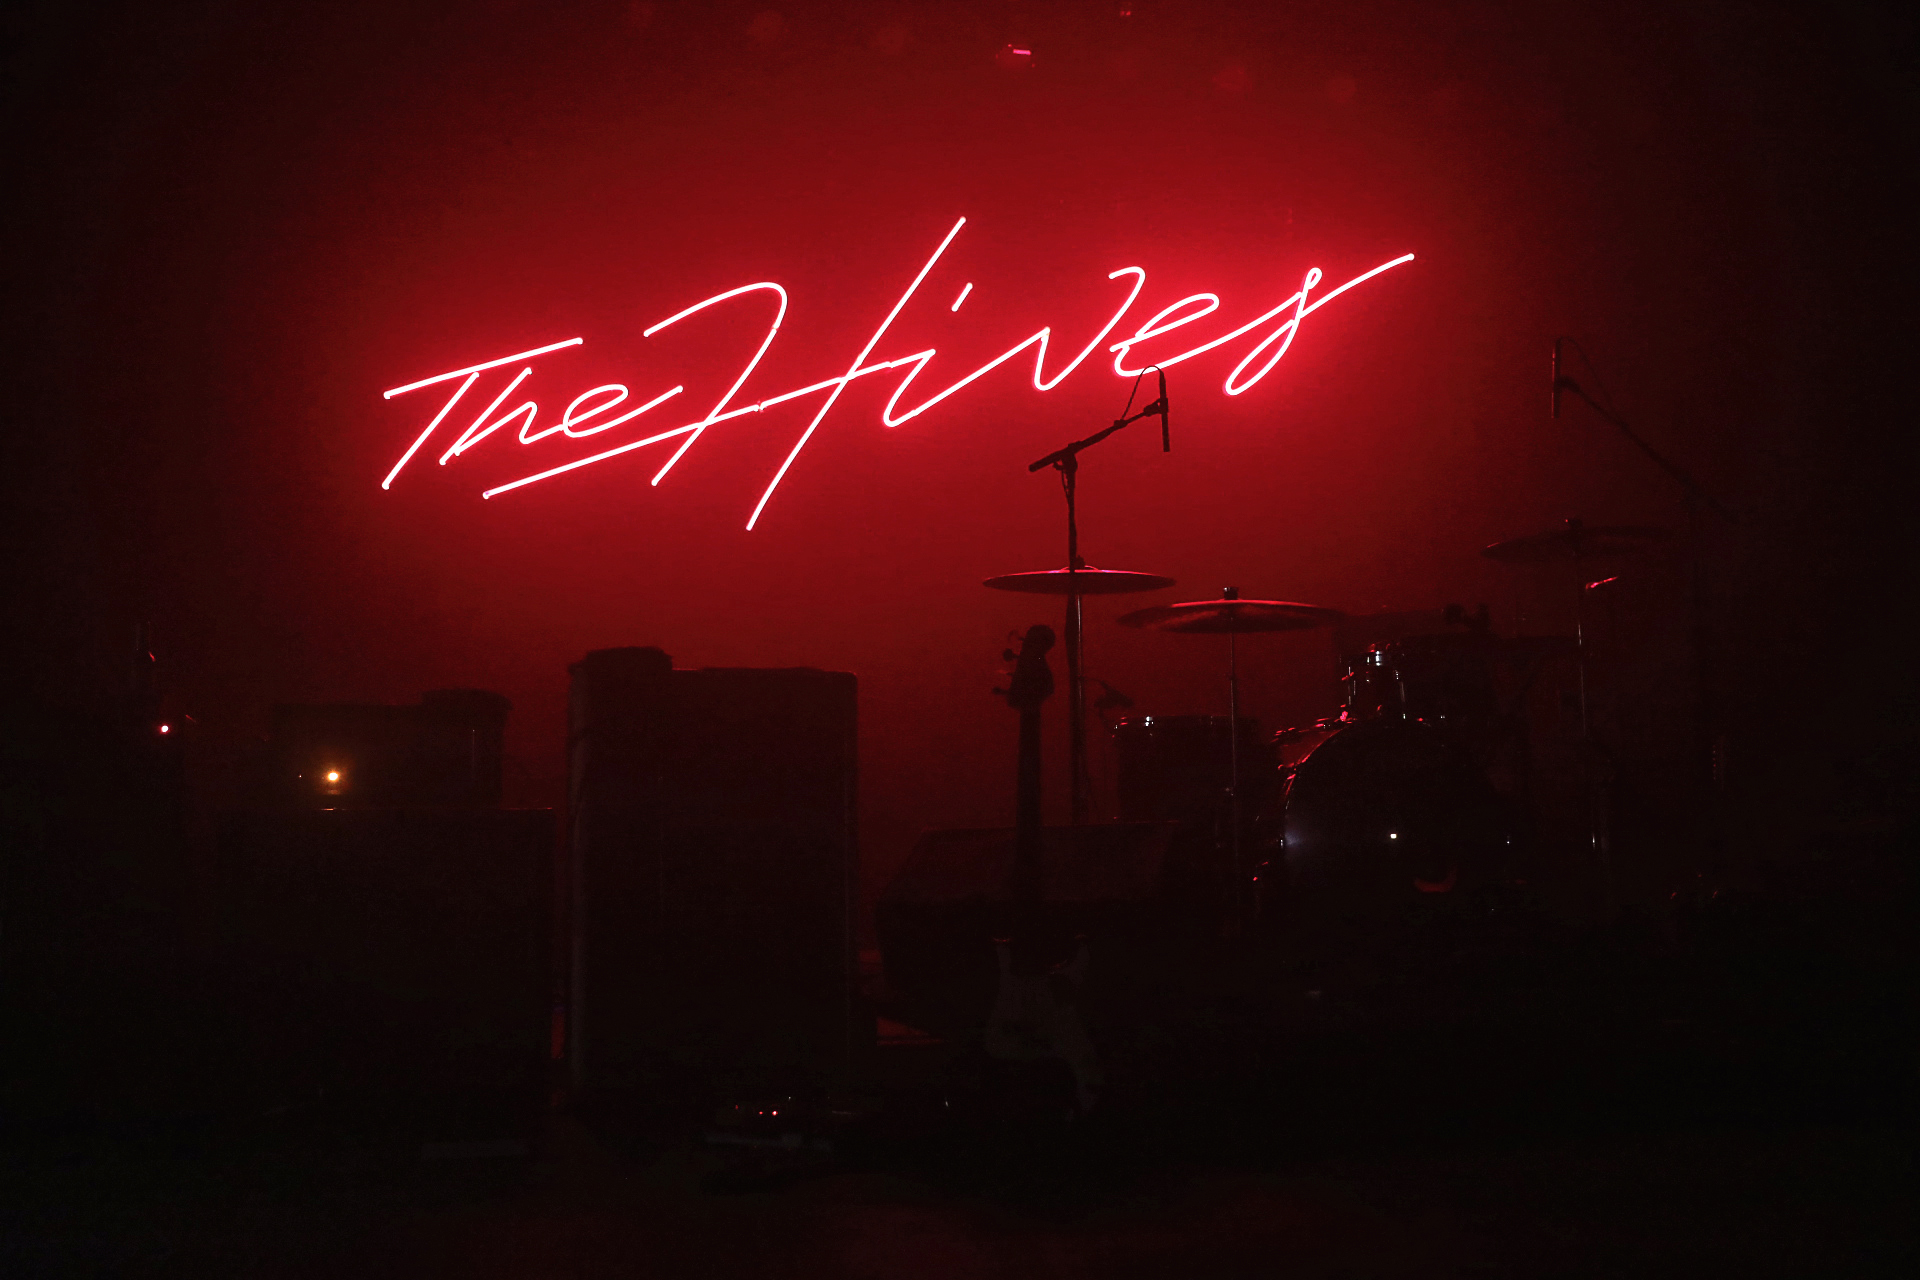 The Hives signage glowing behind the stage before the music begins. Photo: @Lmsorenson